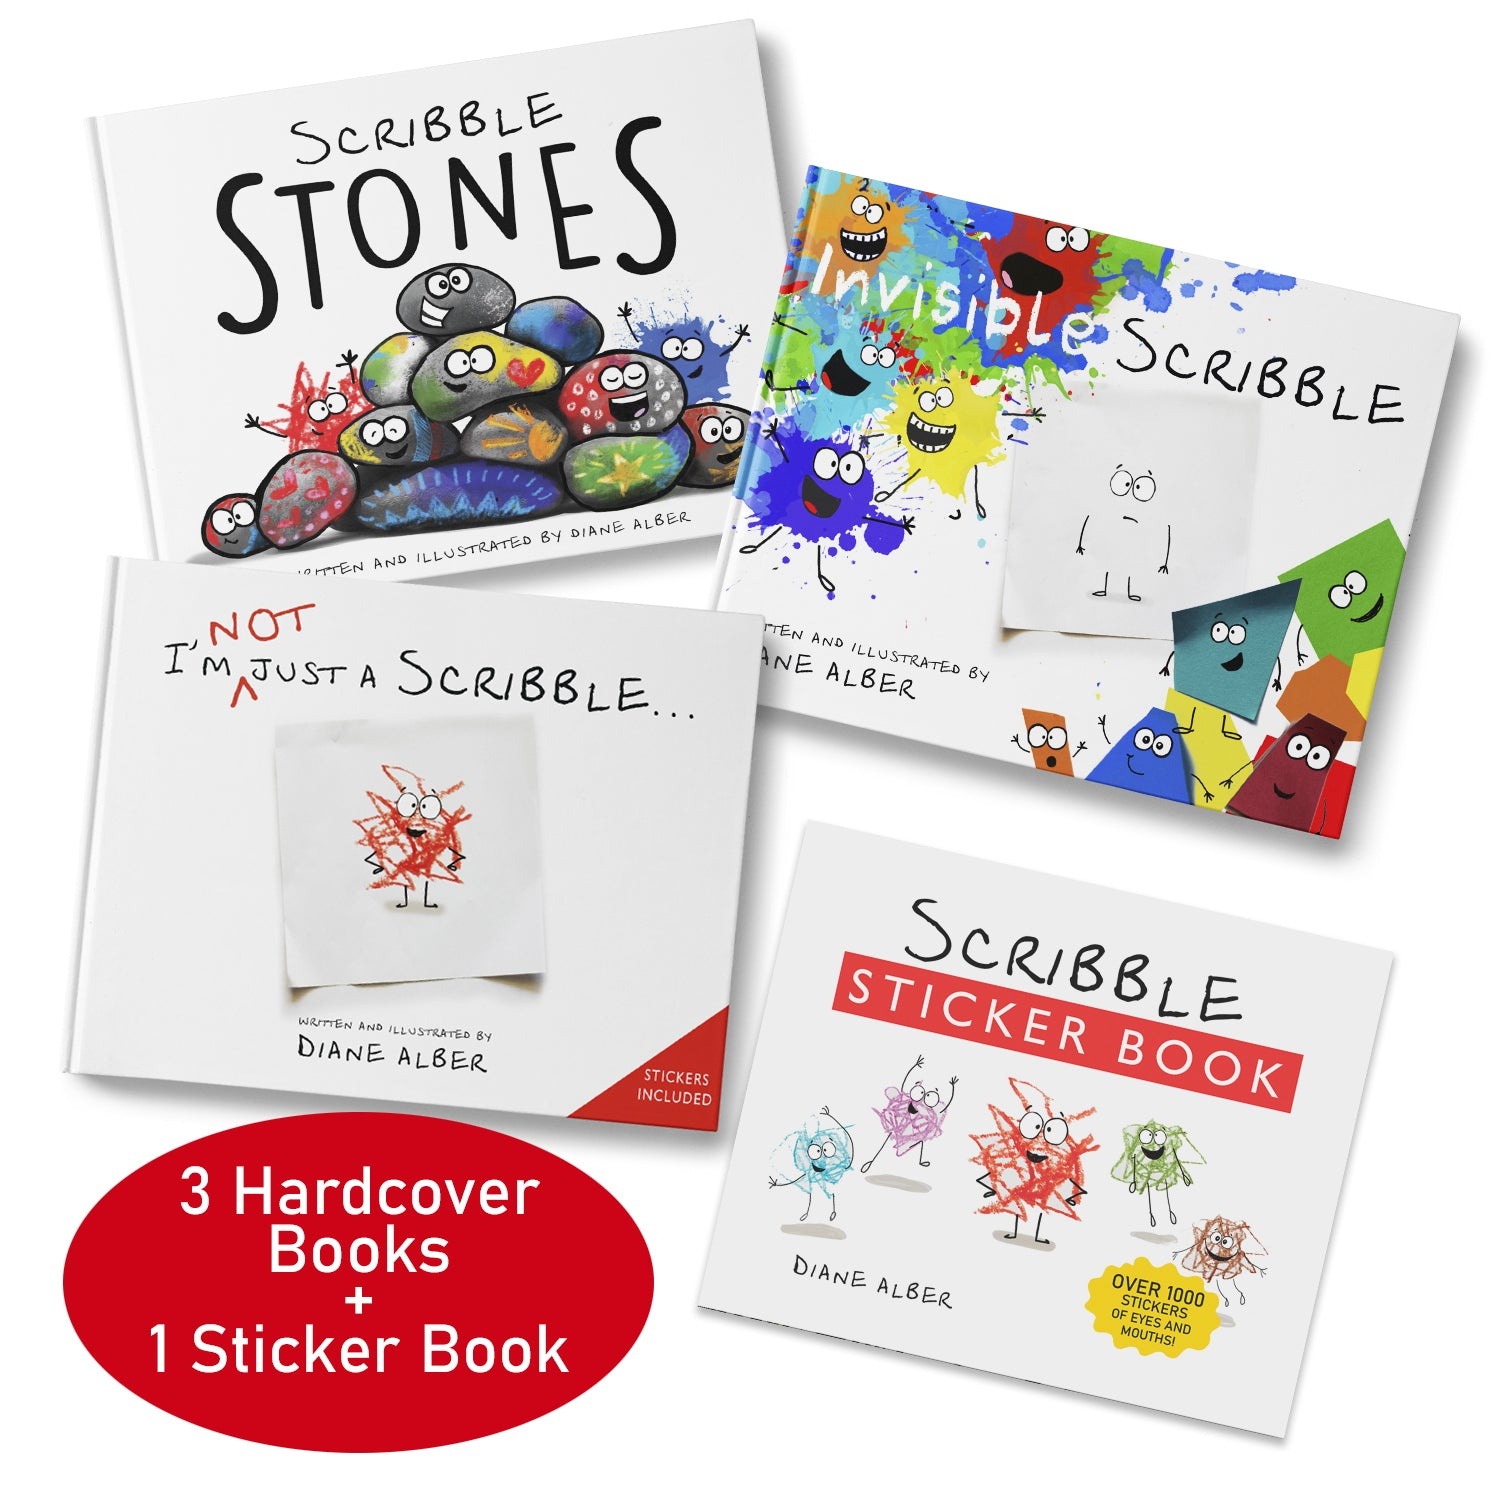 Scribble Bundle (Scribble Stones, Invisible Scribble, I'm not just a Scribble & Scribble Sticker book)